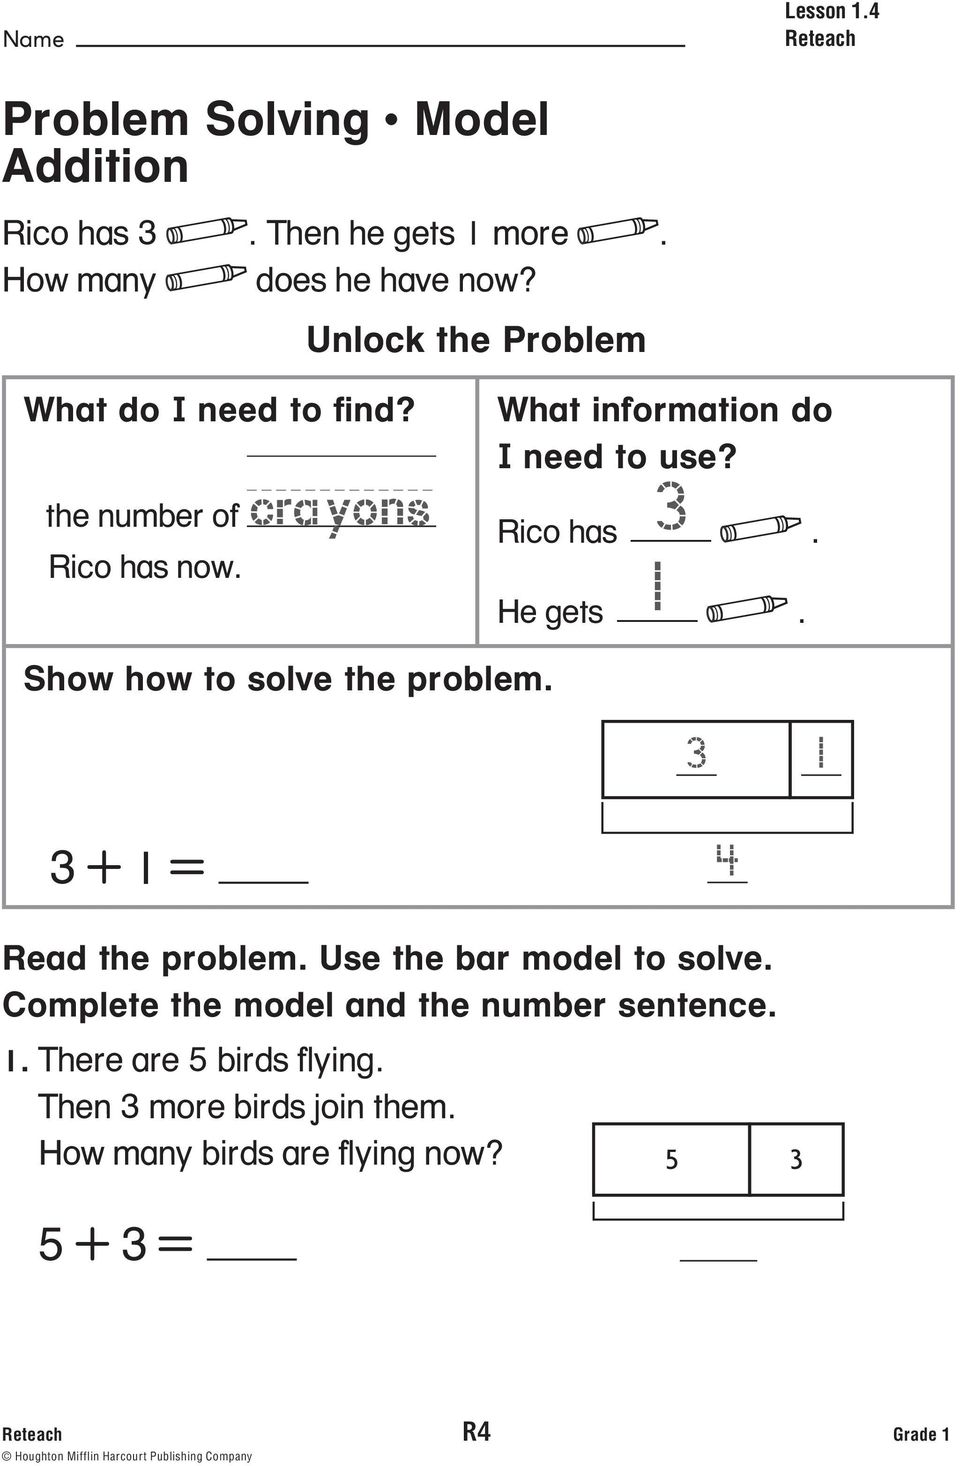 hight resolution of Reteach Book. Grade 1 PROVIDES. Tier 1 Intervention for Every Lesson - PDF  Free Download